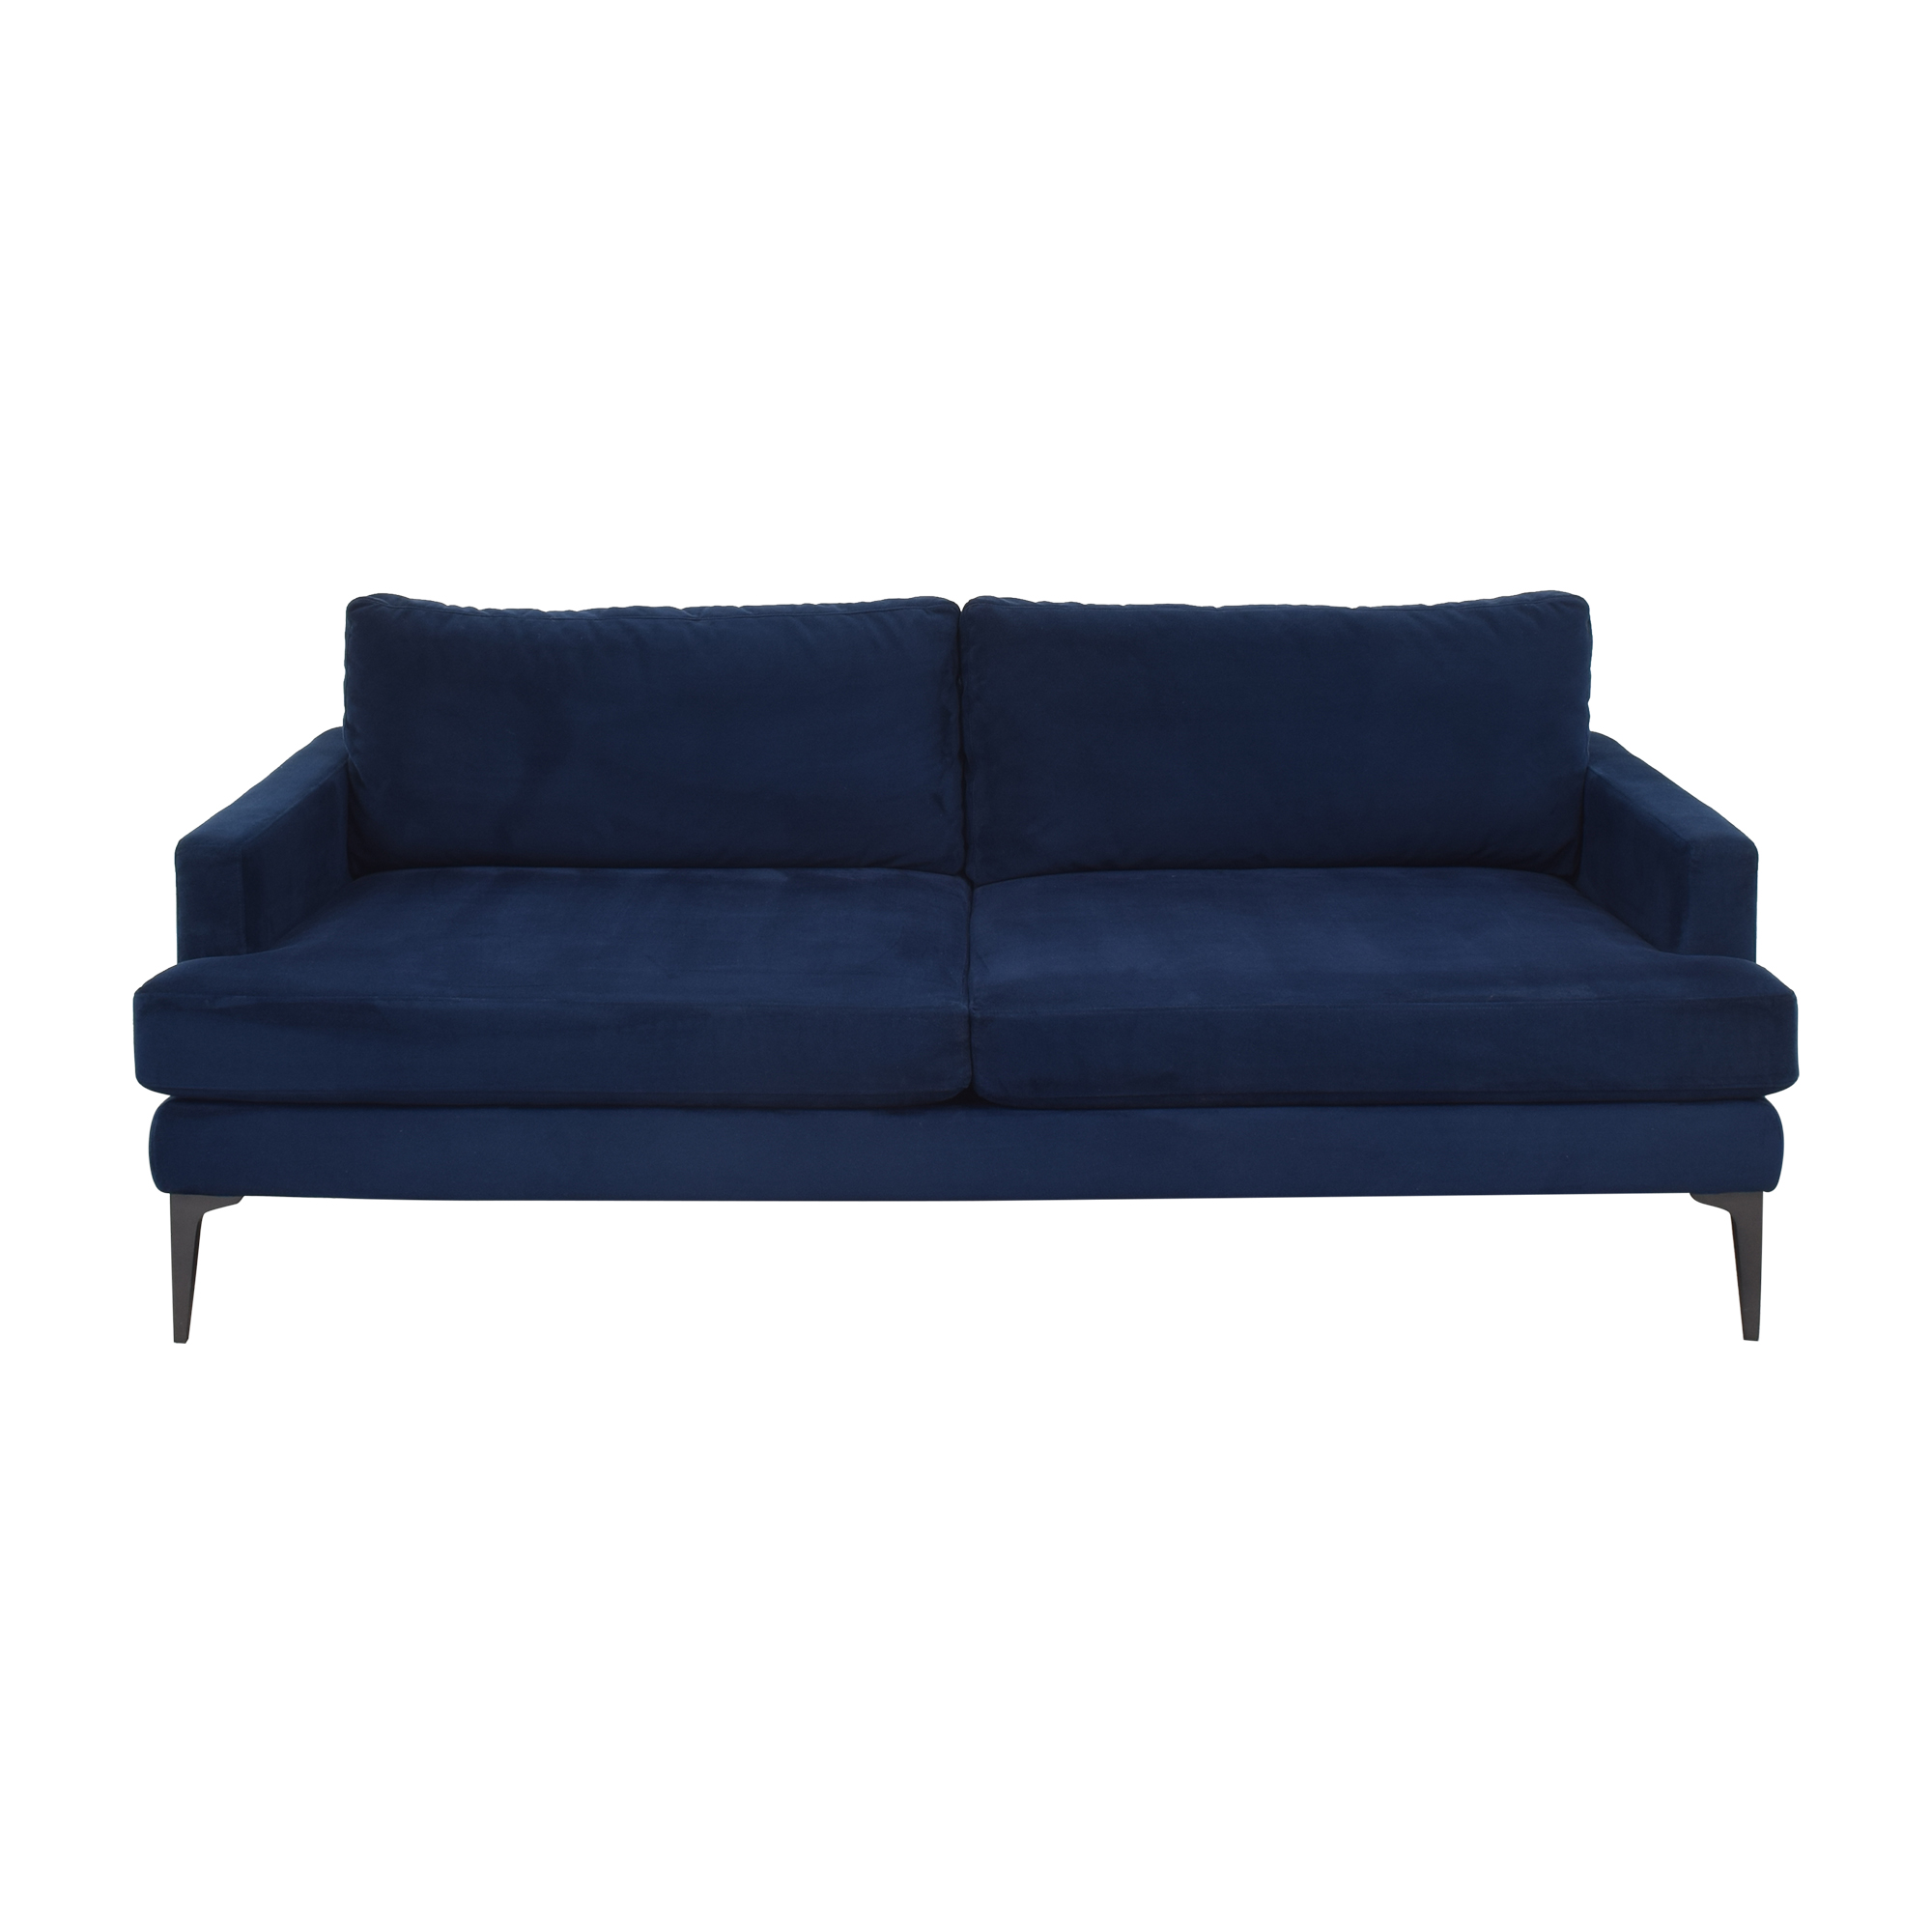 West Elm Andes Sofa sale